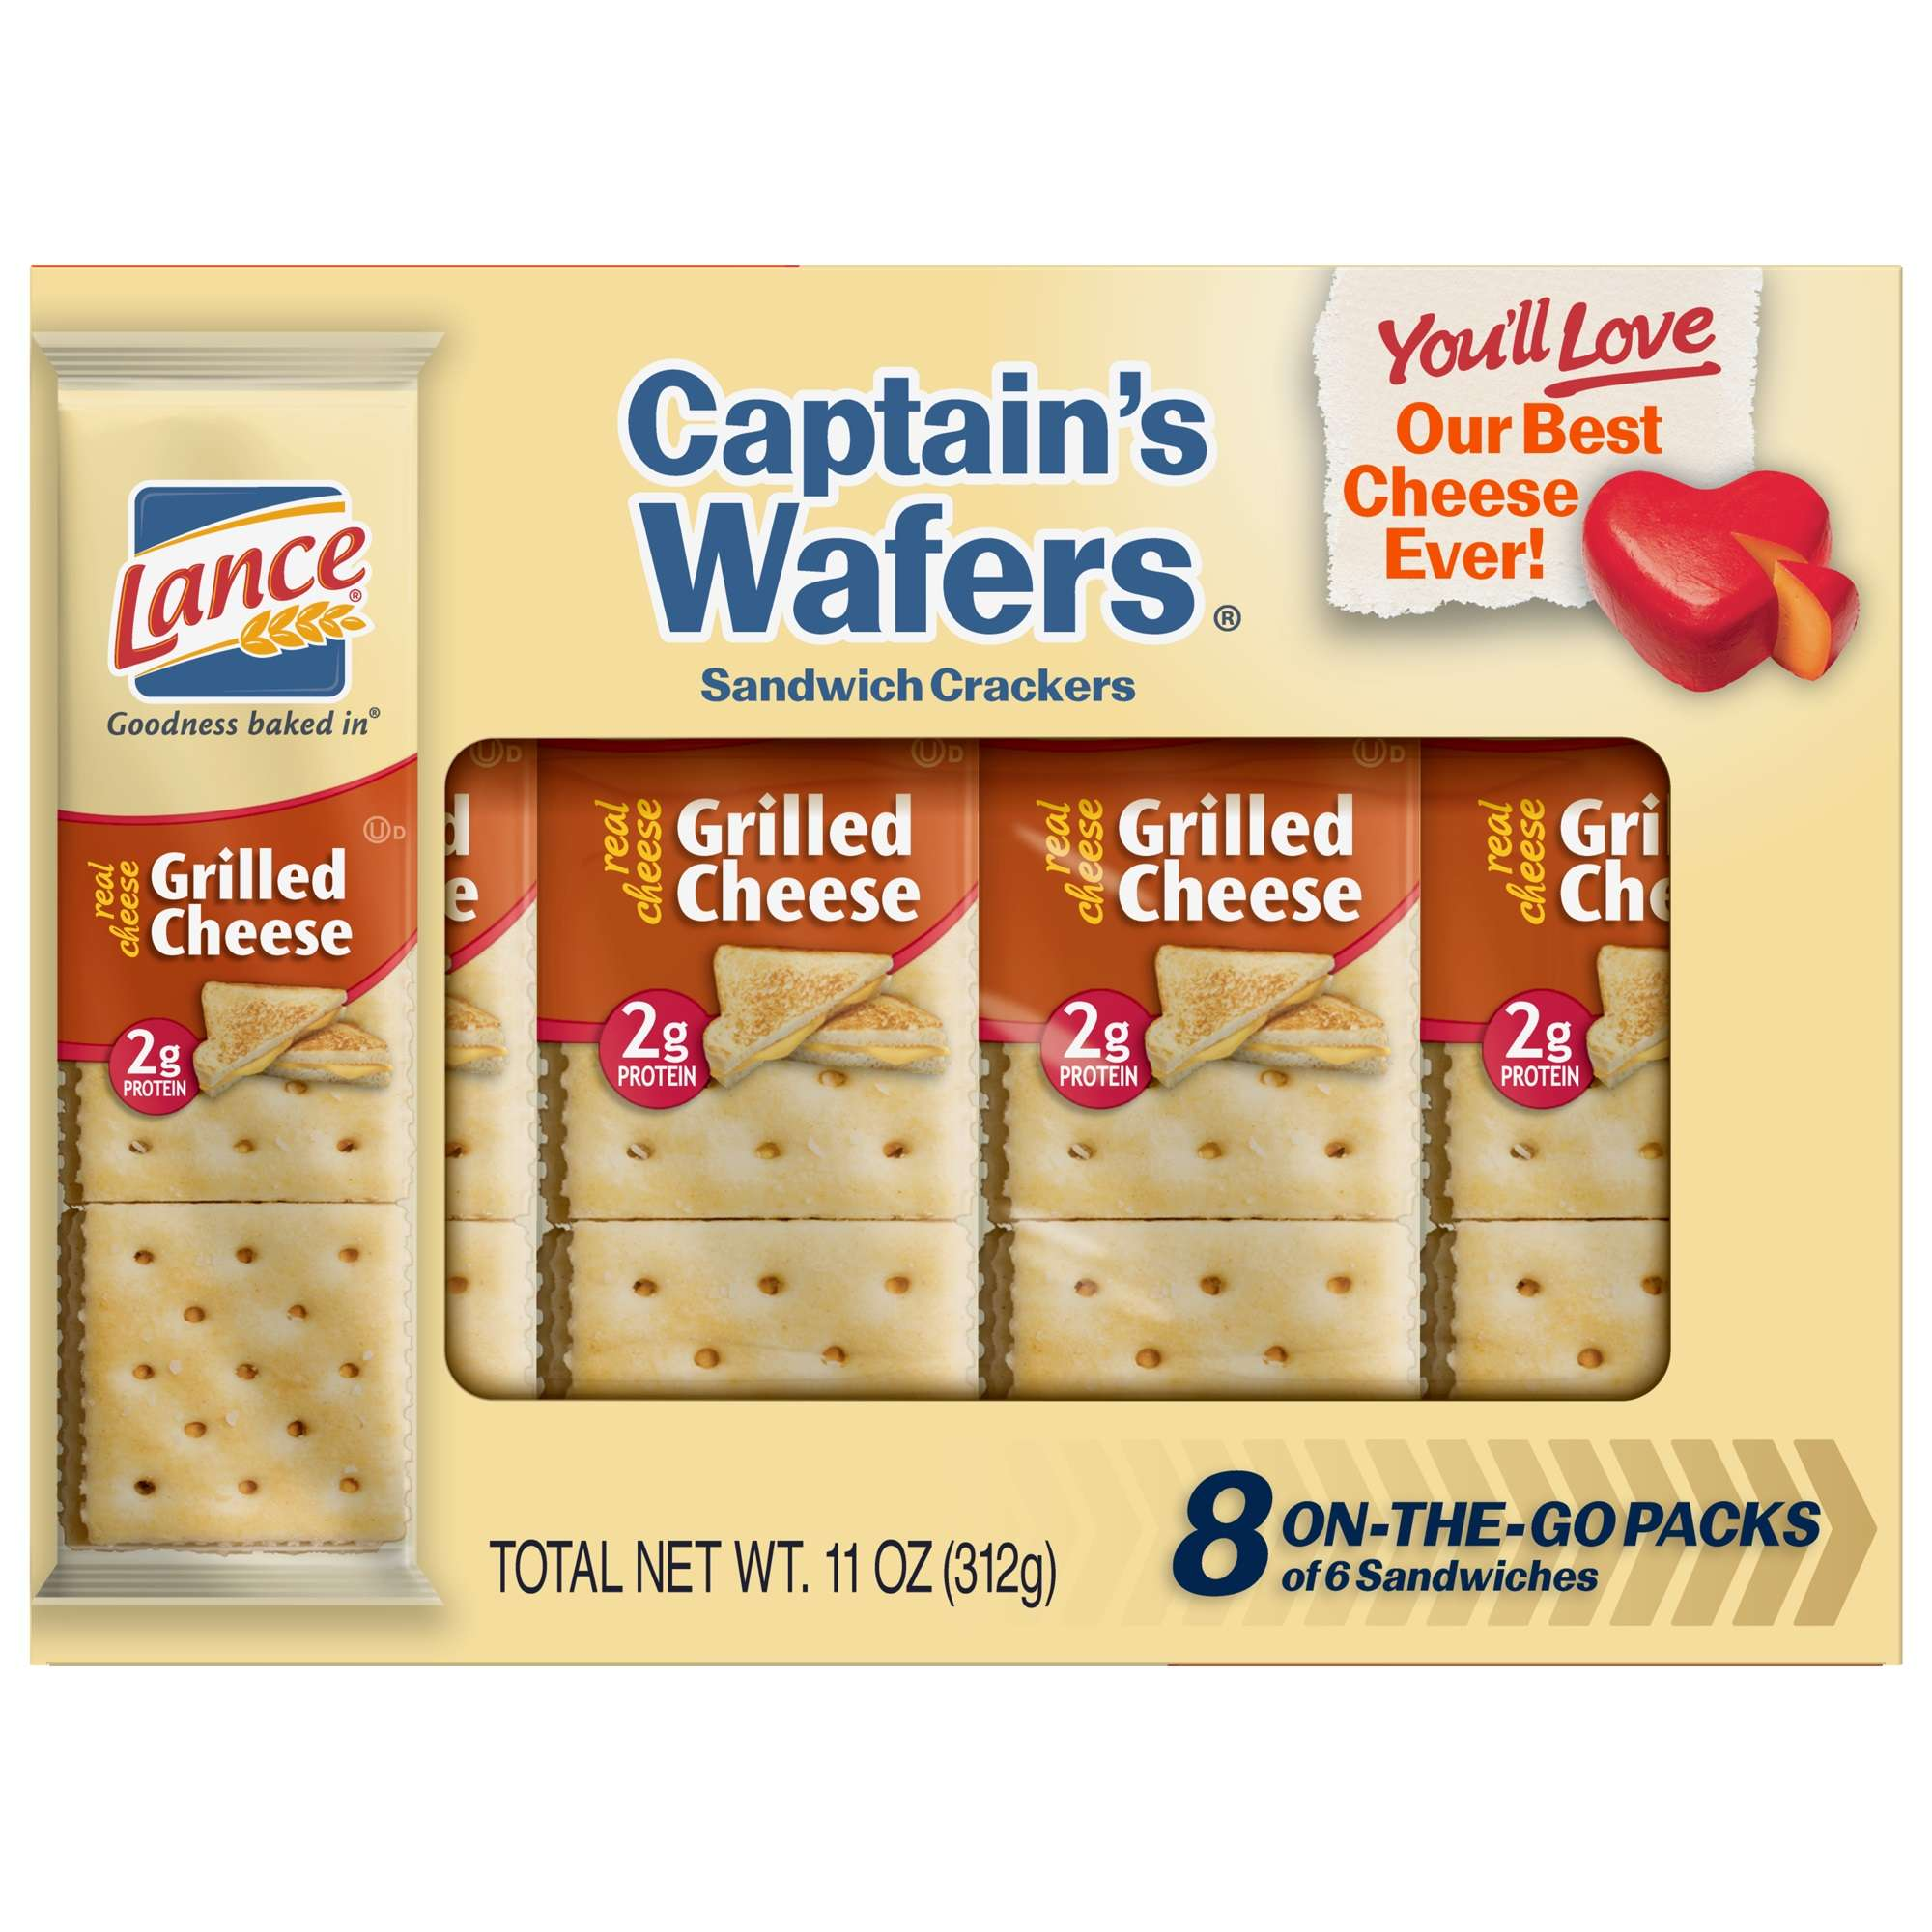 Lance Cracker Sandwiches Captain's Wafers Grilled Cheese - 8 Count